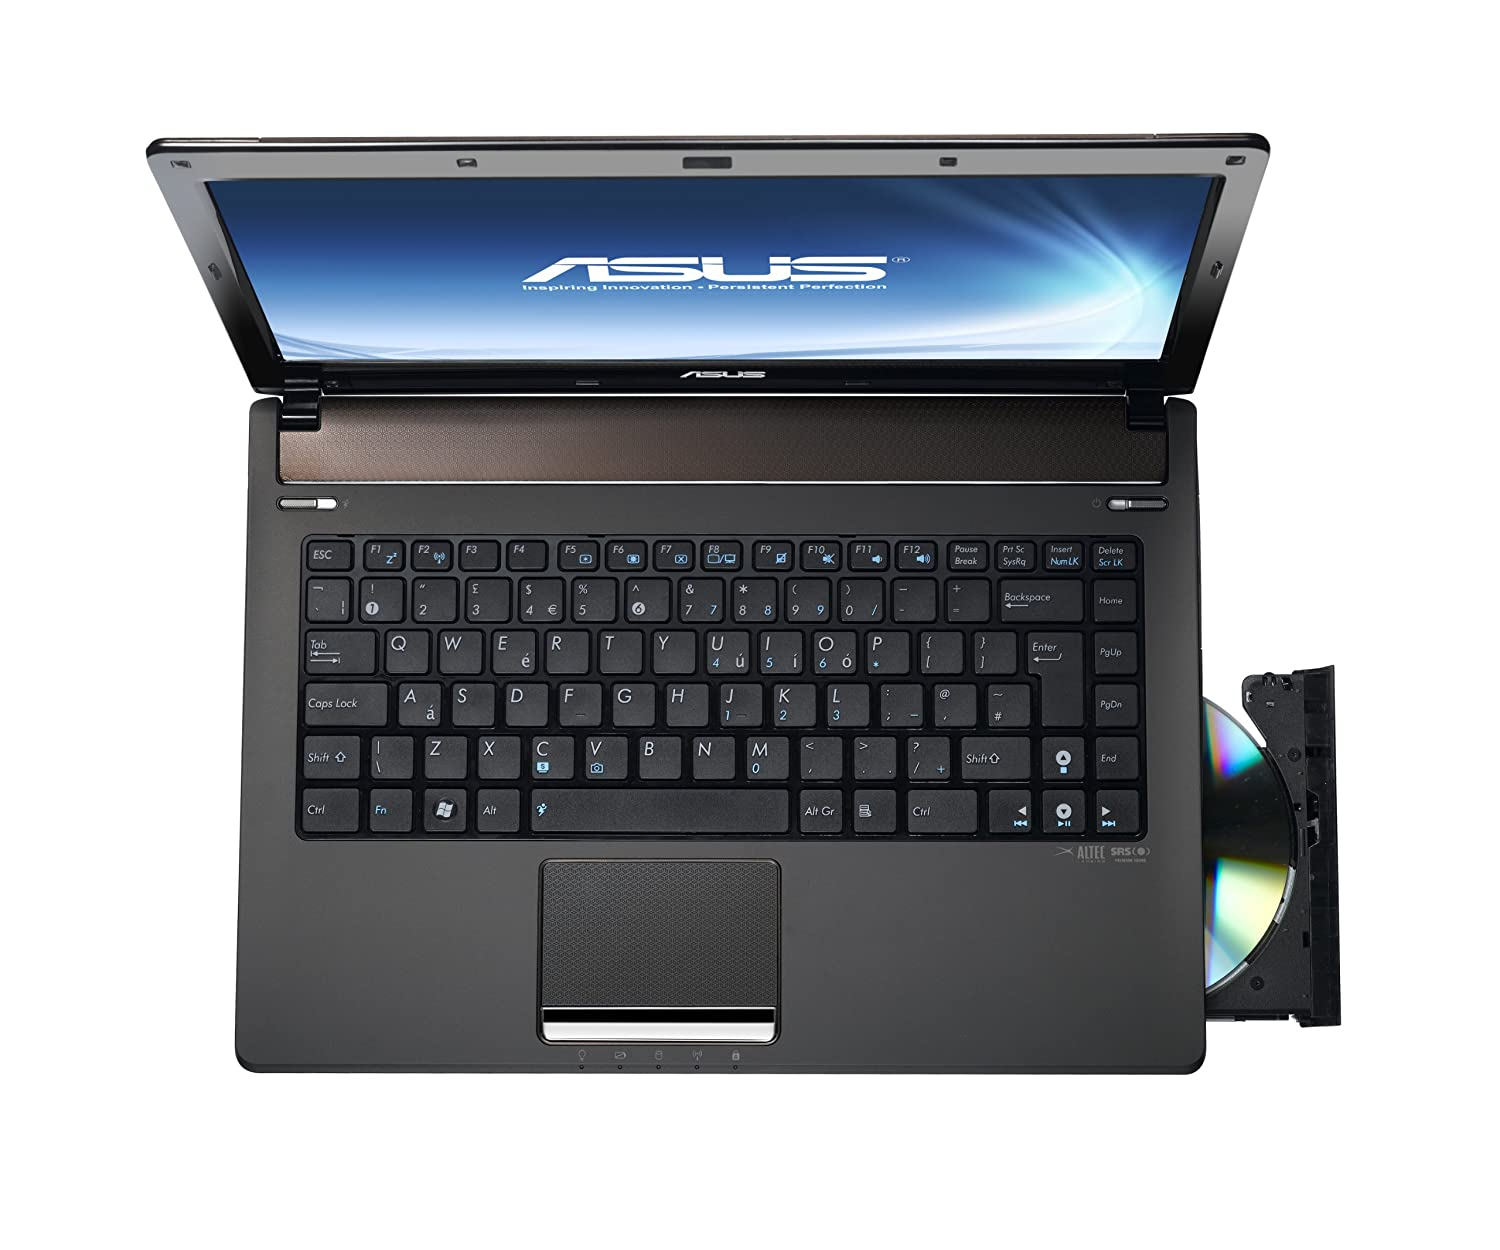 Asus N82Jq Notebook Management Drivers for Windows XP